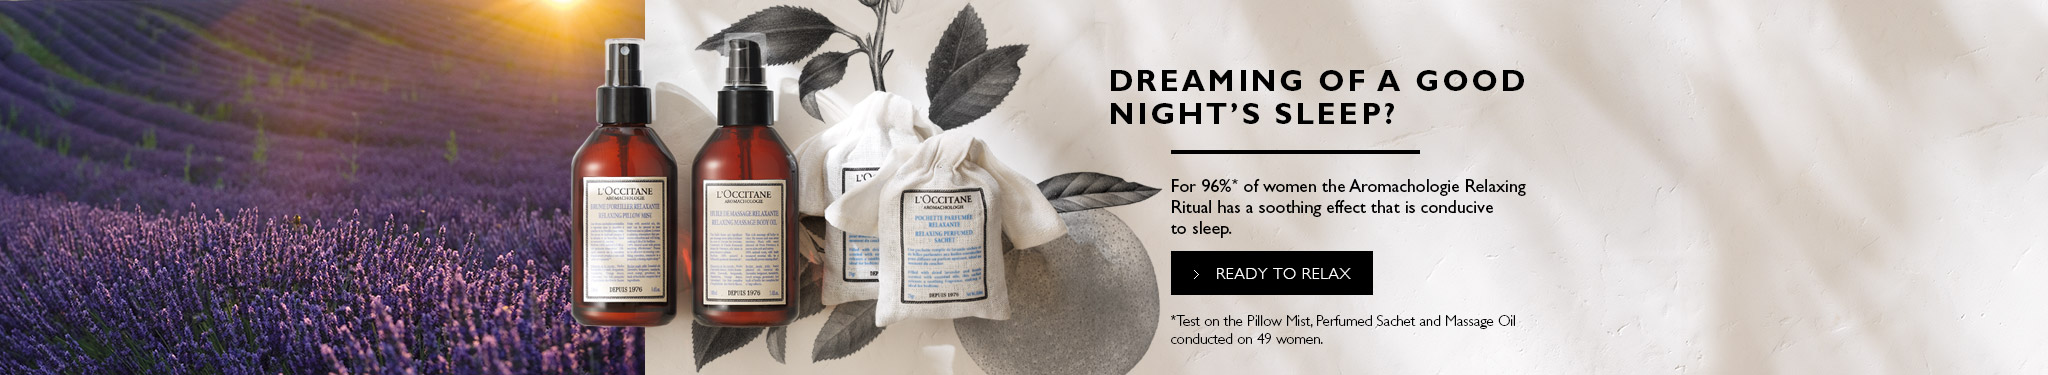 Dreaming of a good nights sleep?